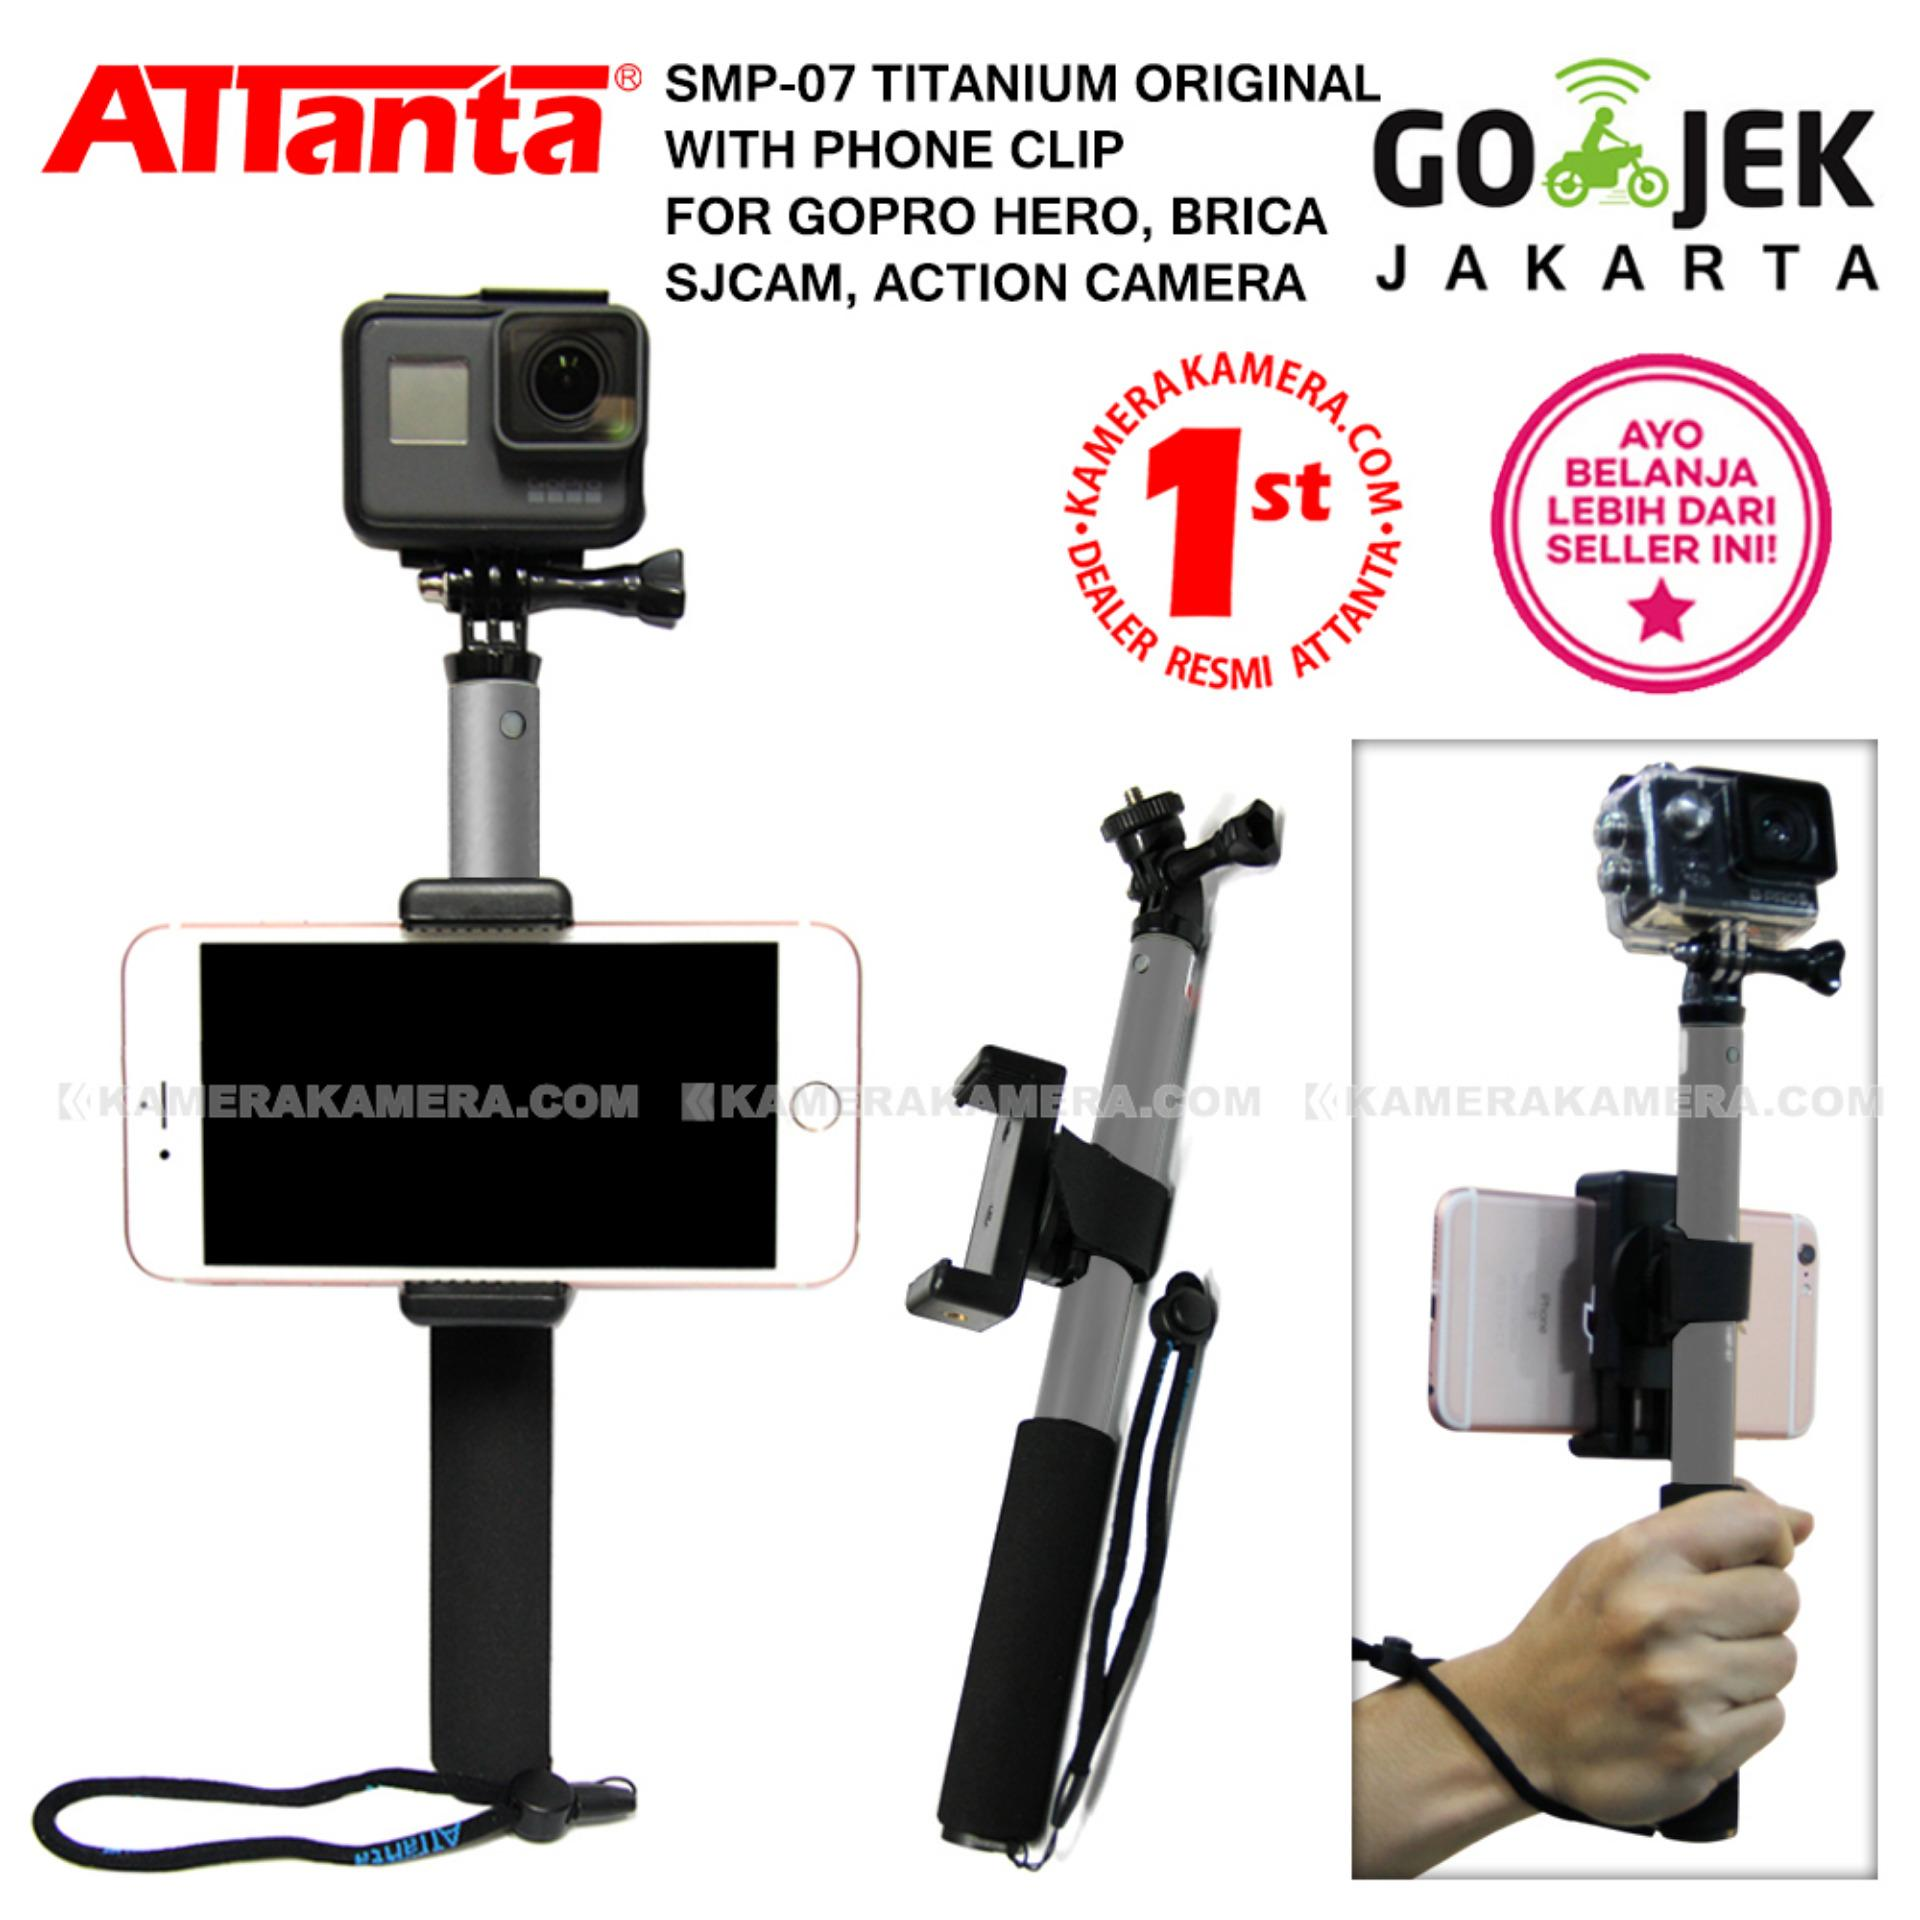 Beli Attanta Smp 07 Original Titanium Phone Clip For Gopro Action Camera Dslr Smartphone Camera Pocket Mirrorless Terbaru